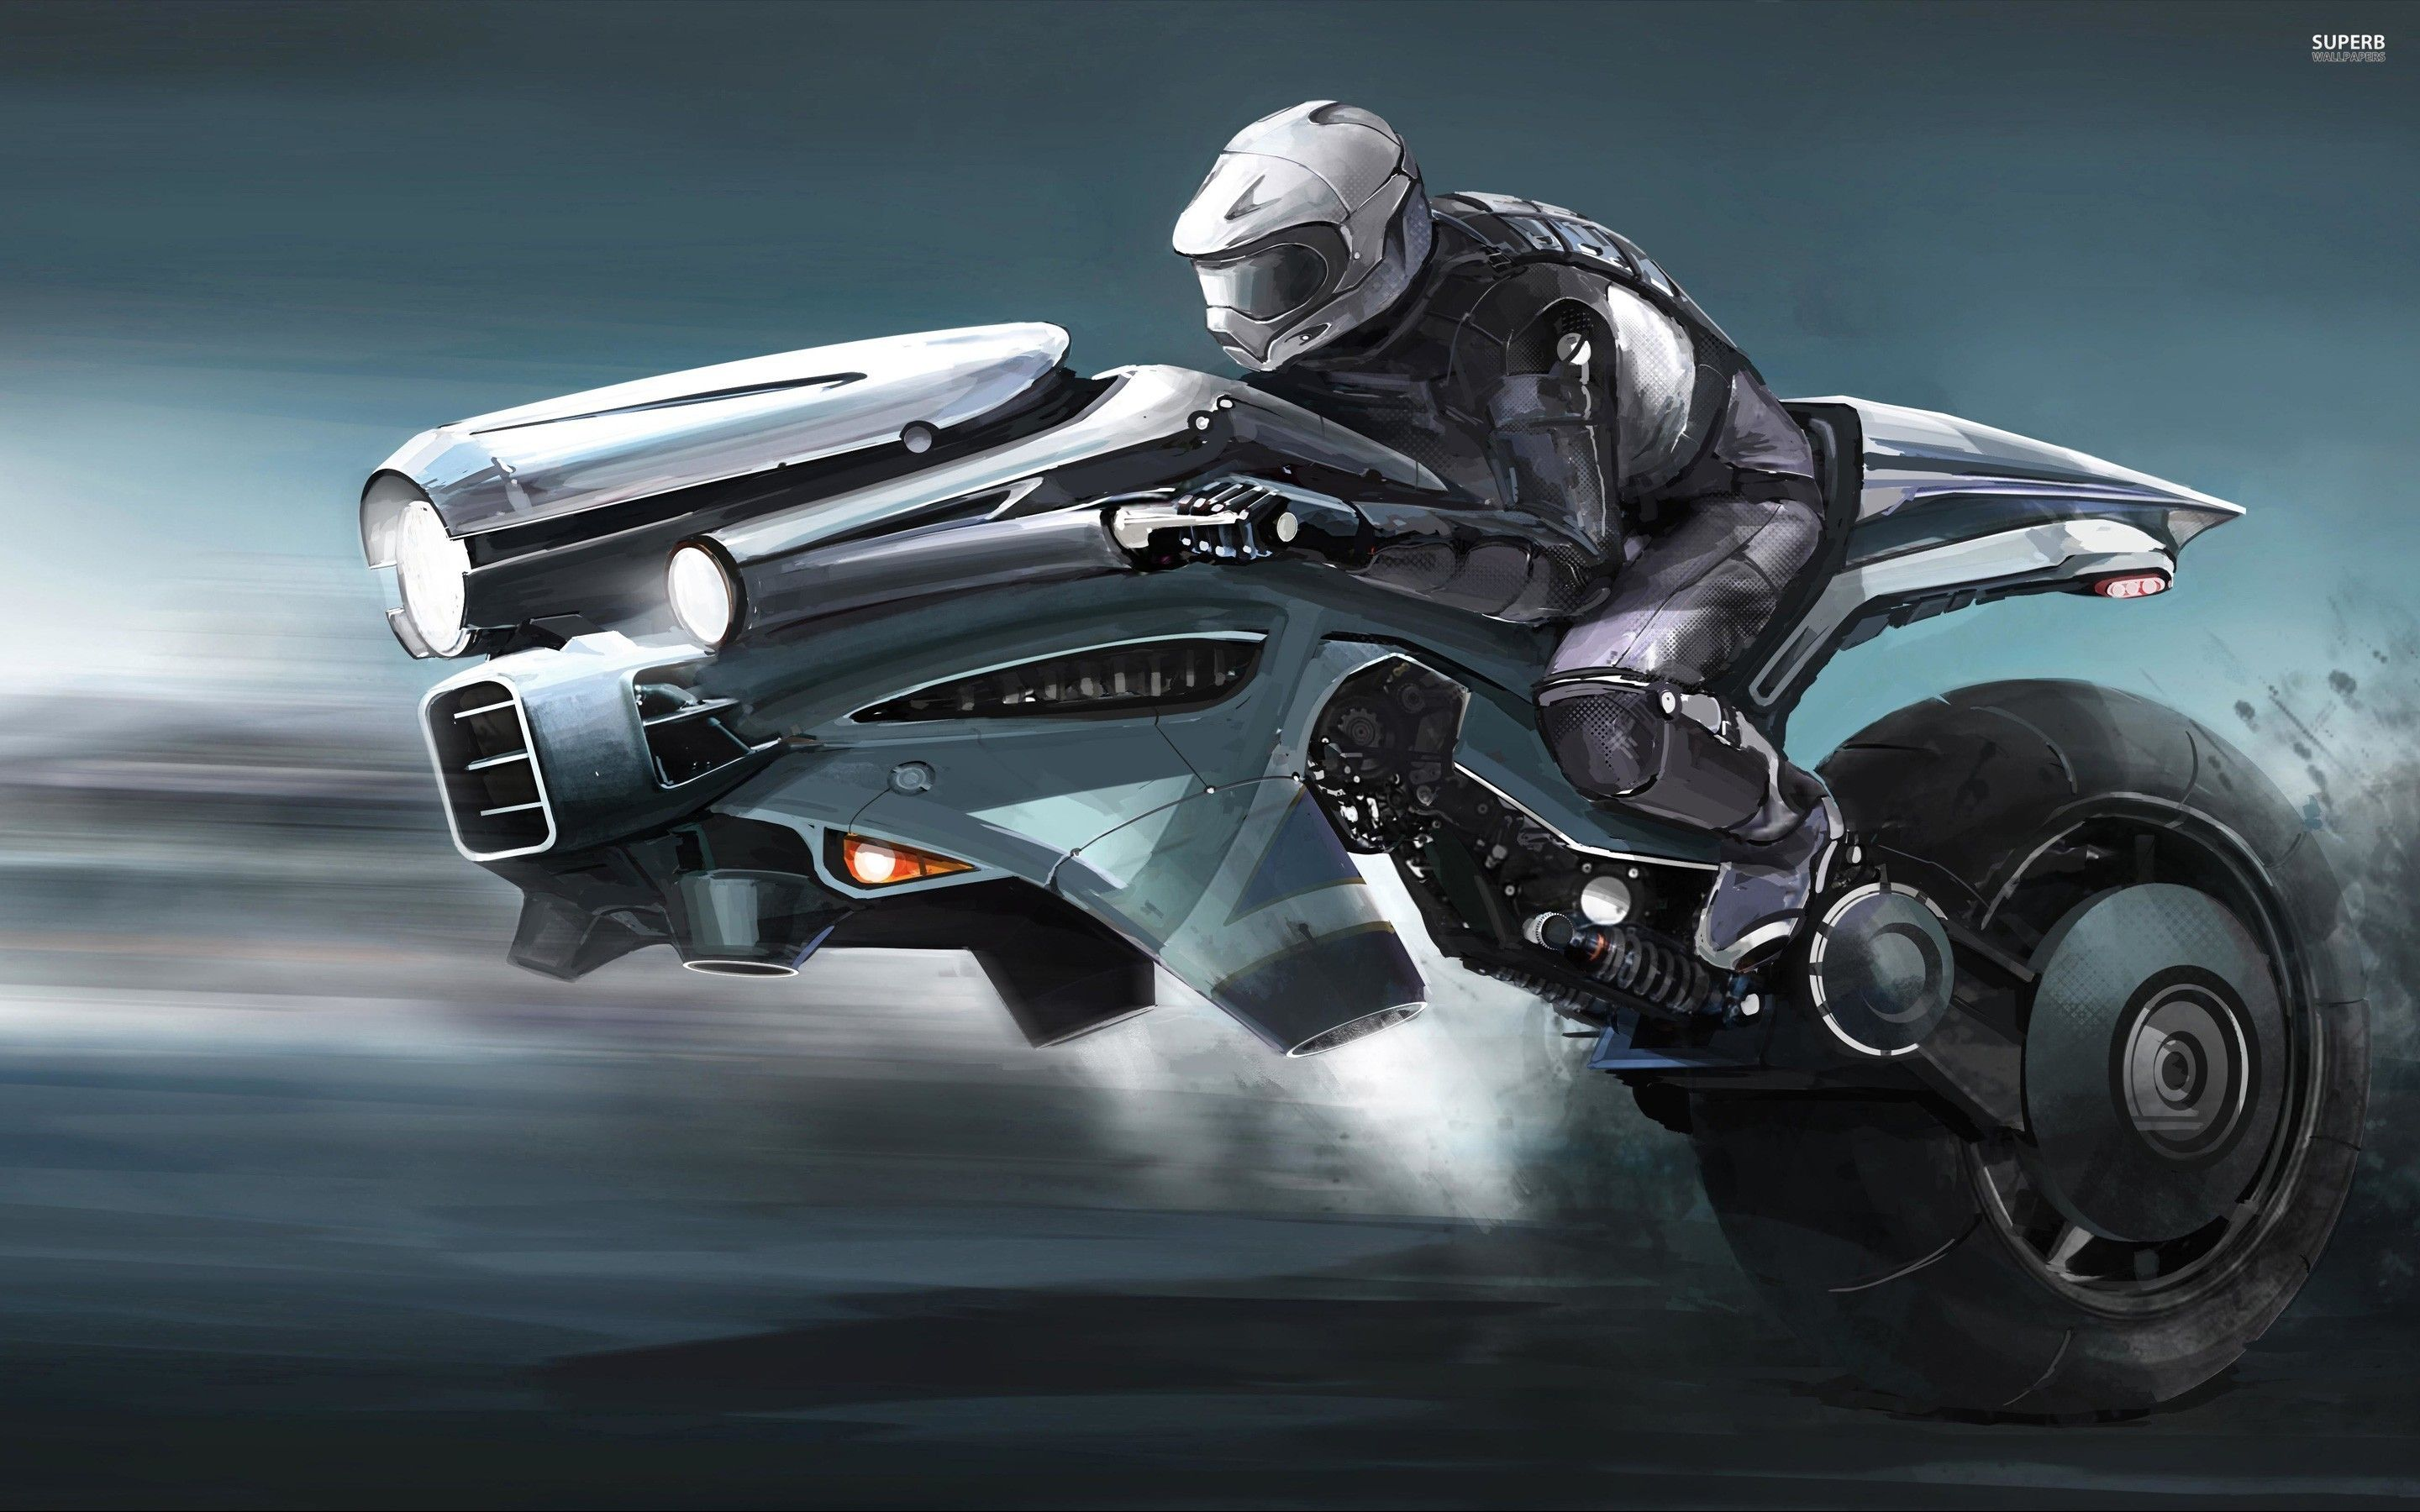 future flying motorcycles riding the futuristic bike | future